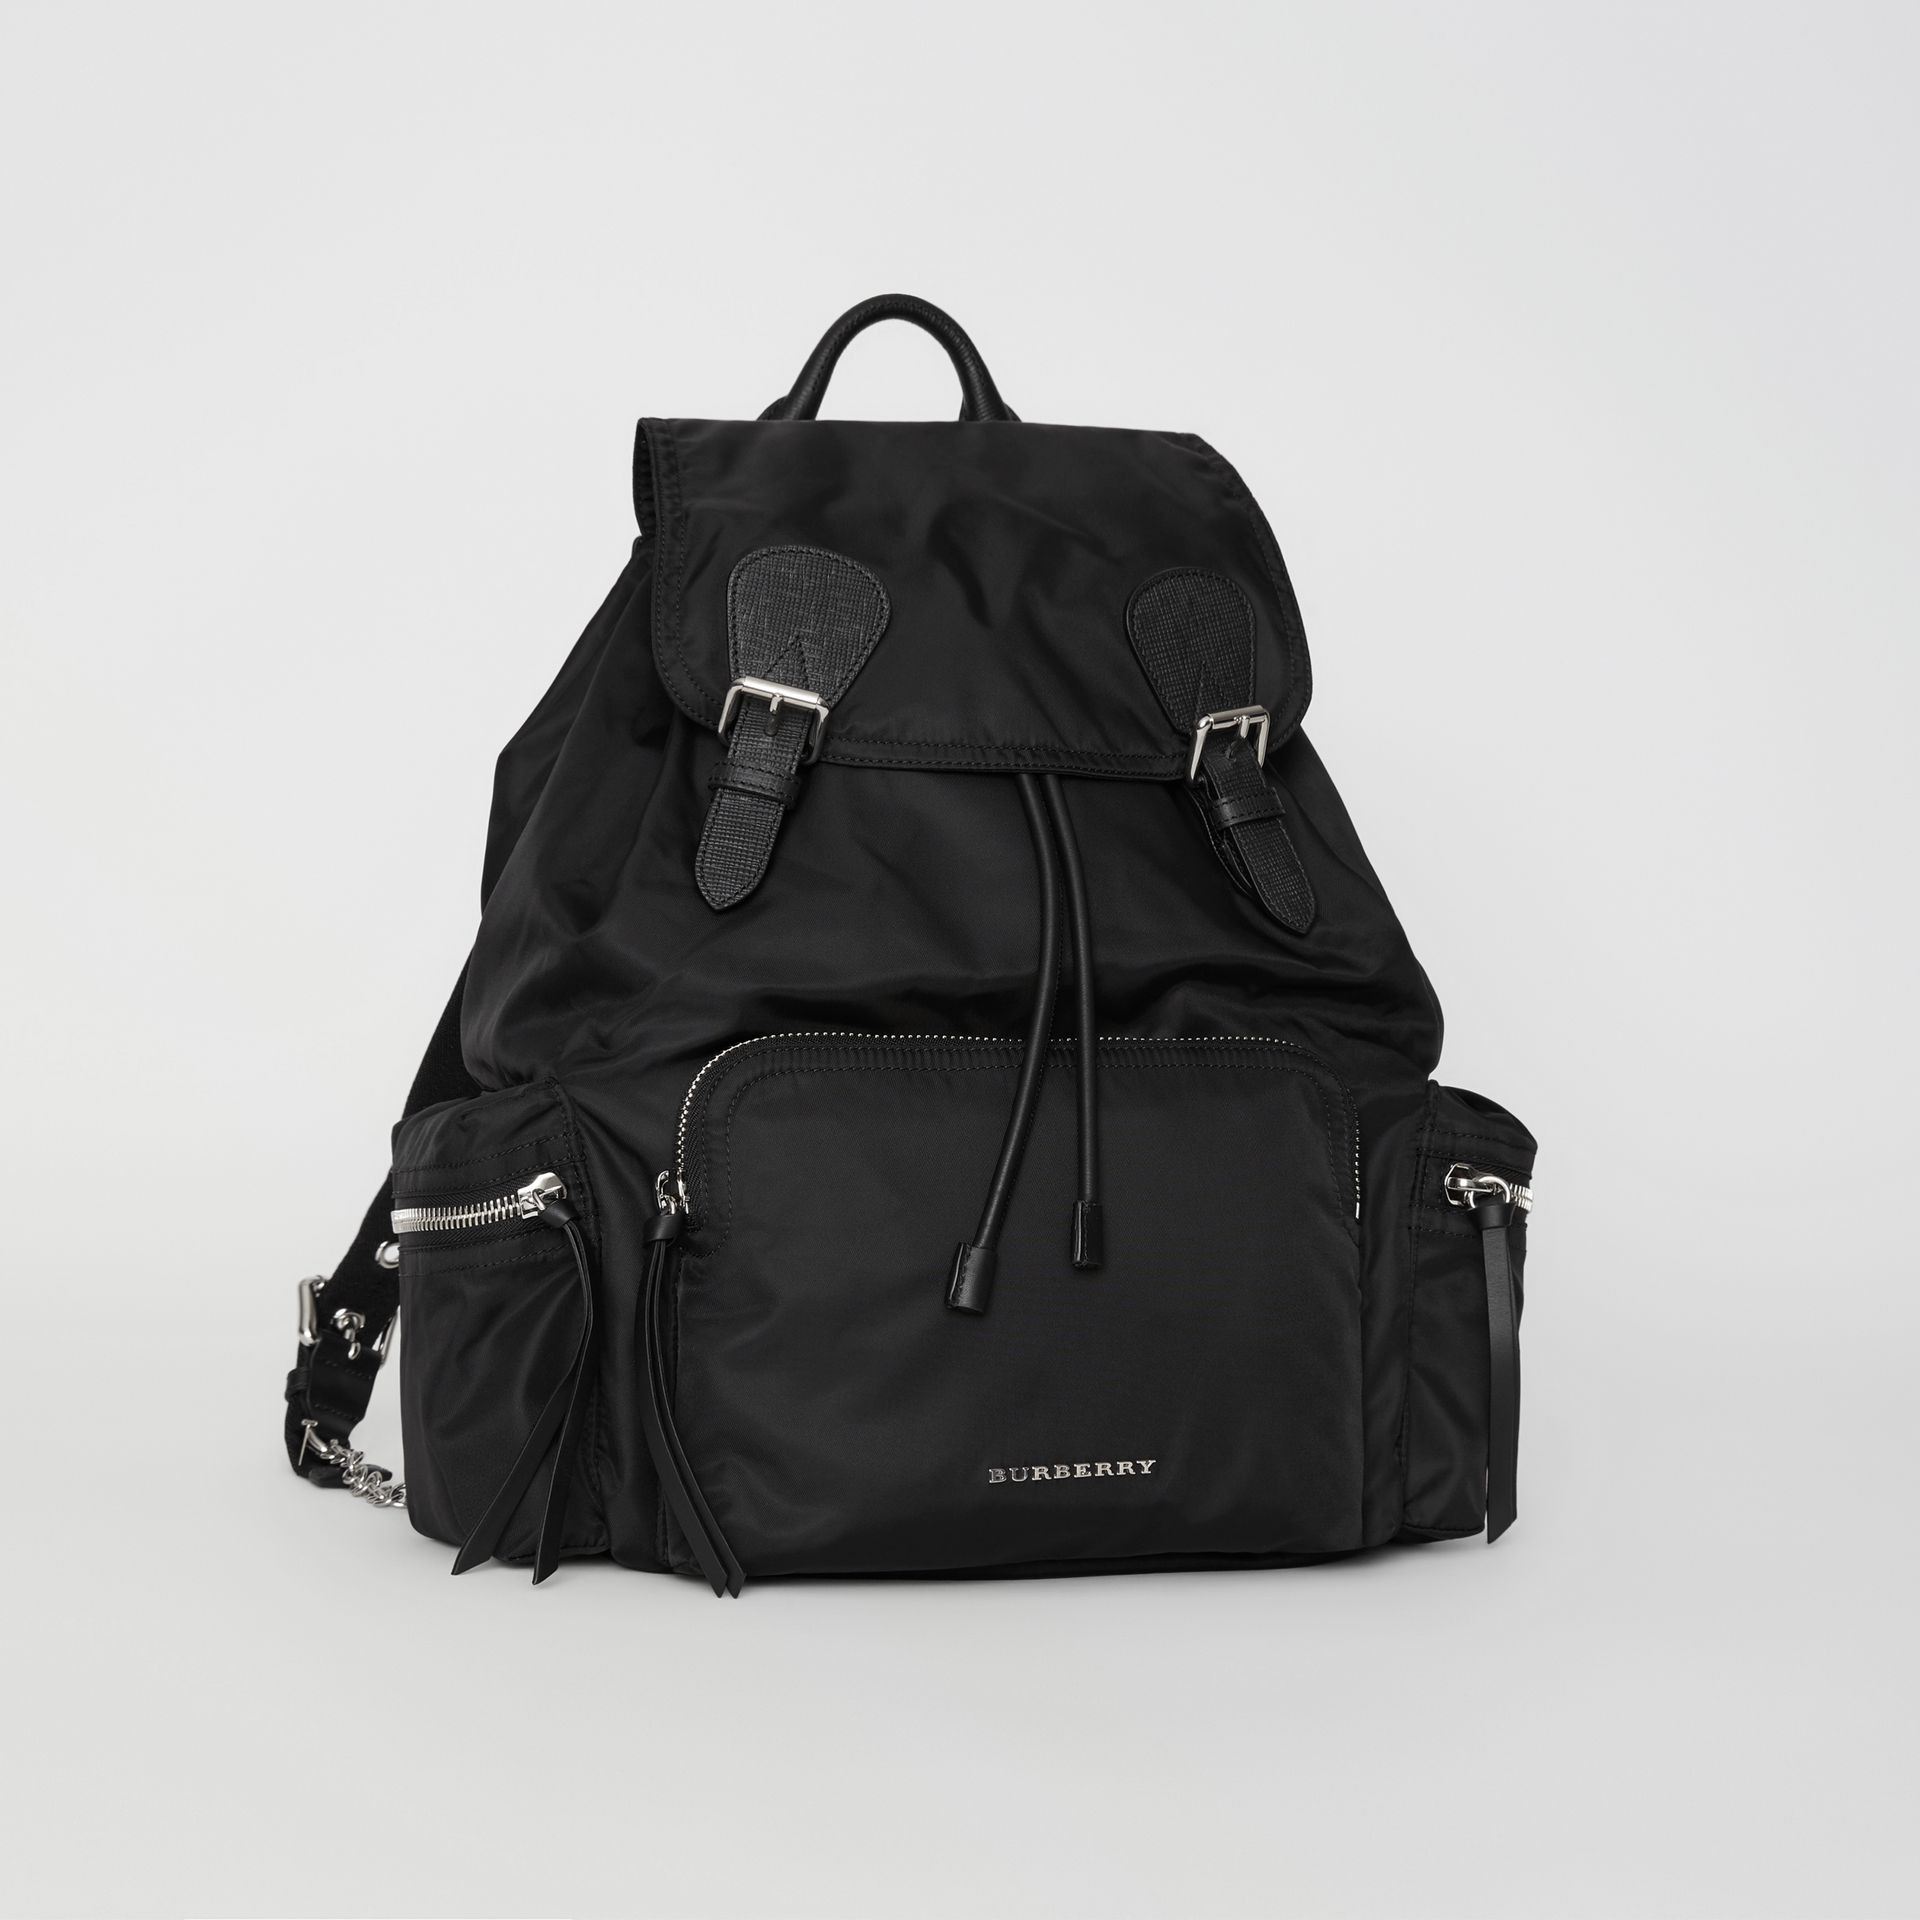 Grand sac The Rucksack en nylon technique et cuir (Noir) - Femme | Burberry Canada - photo de la galerie 6